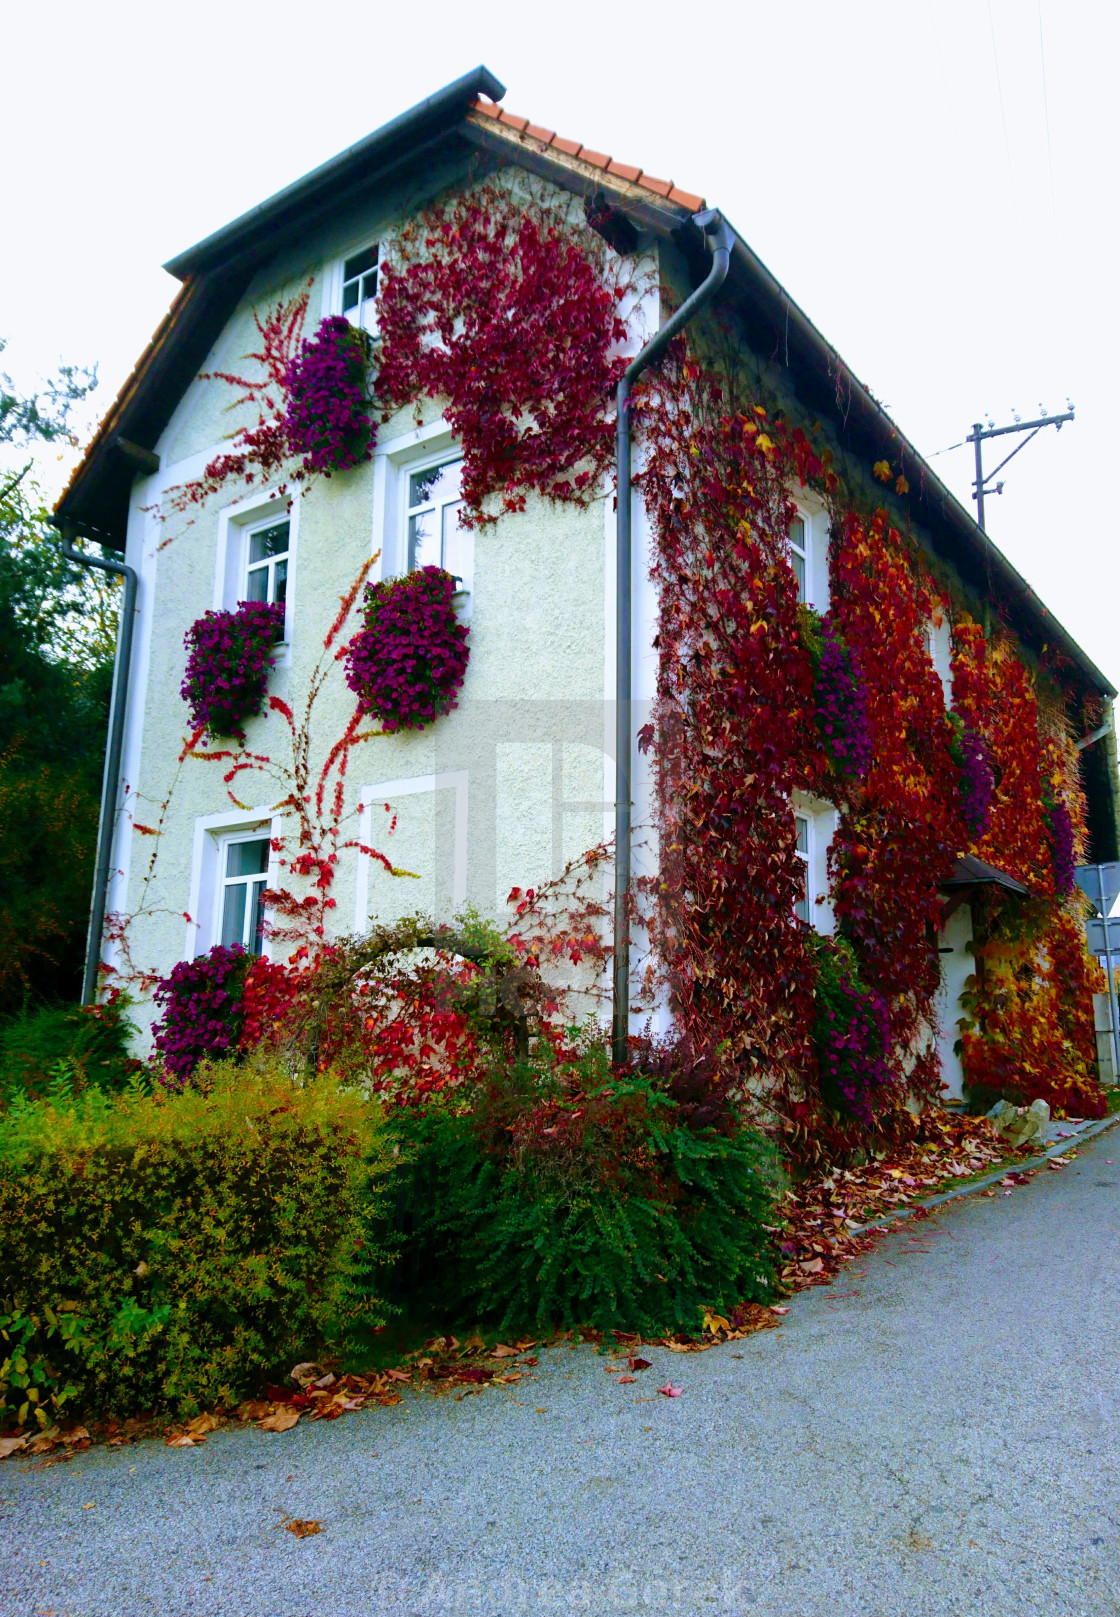 Autumn colors on a village house